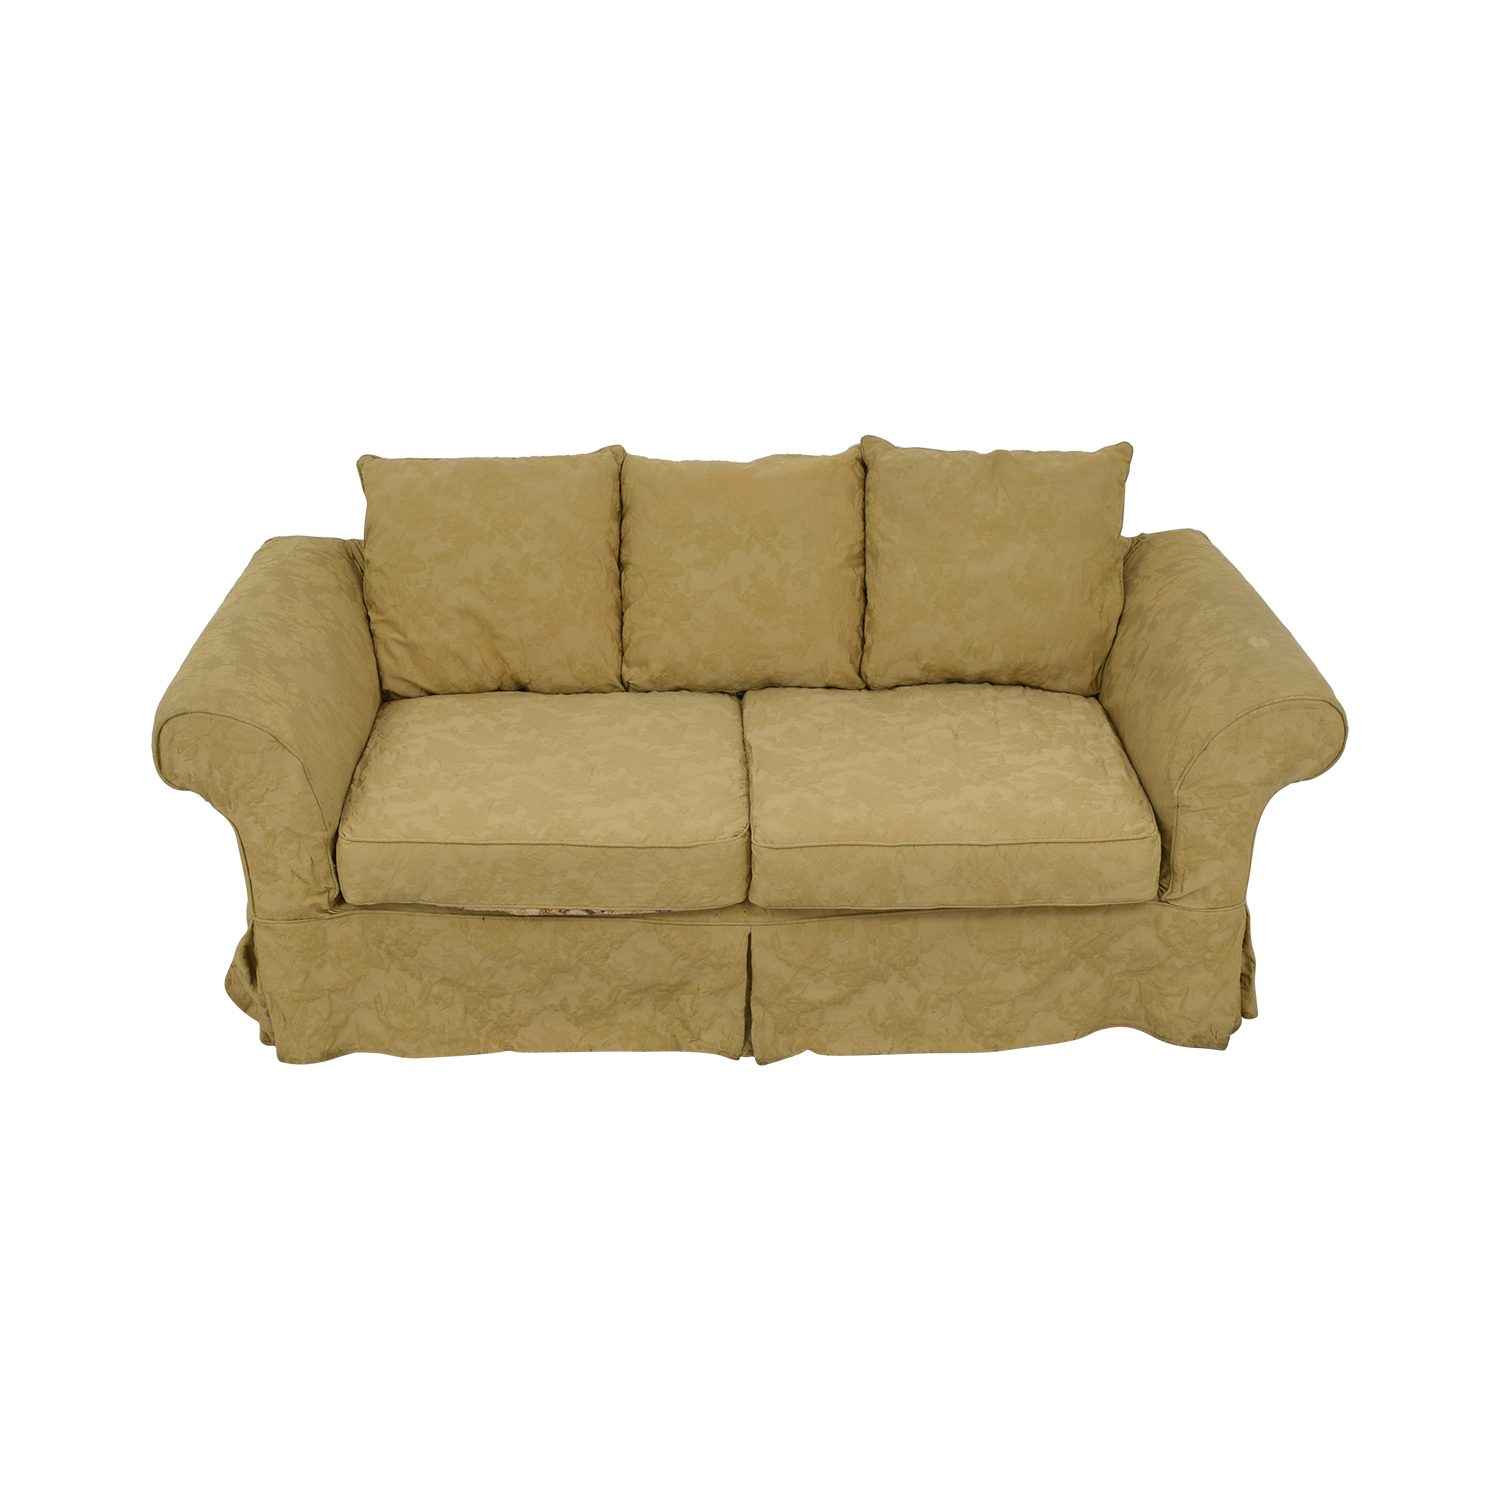 Domain French Country Style Sofa